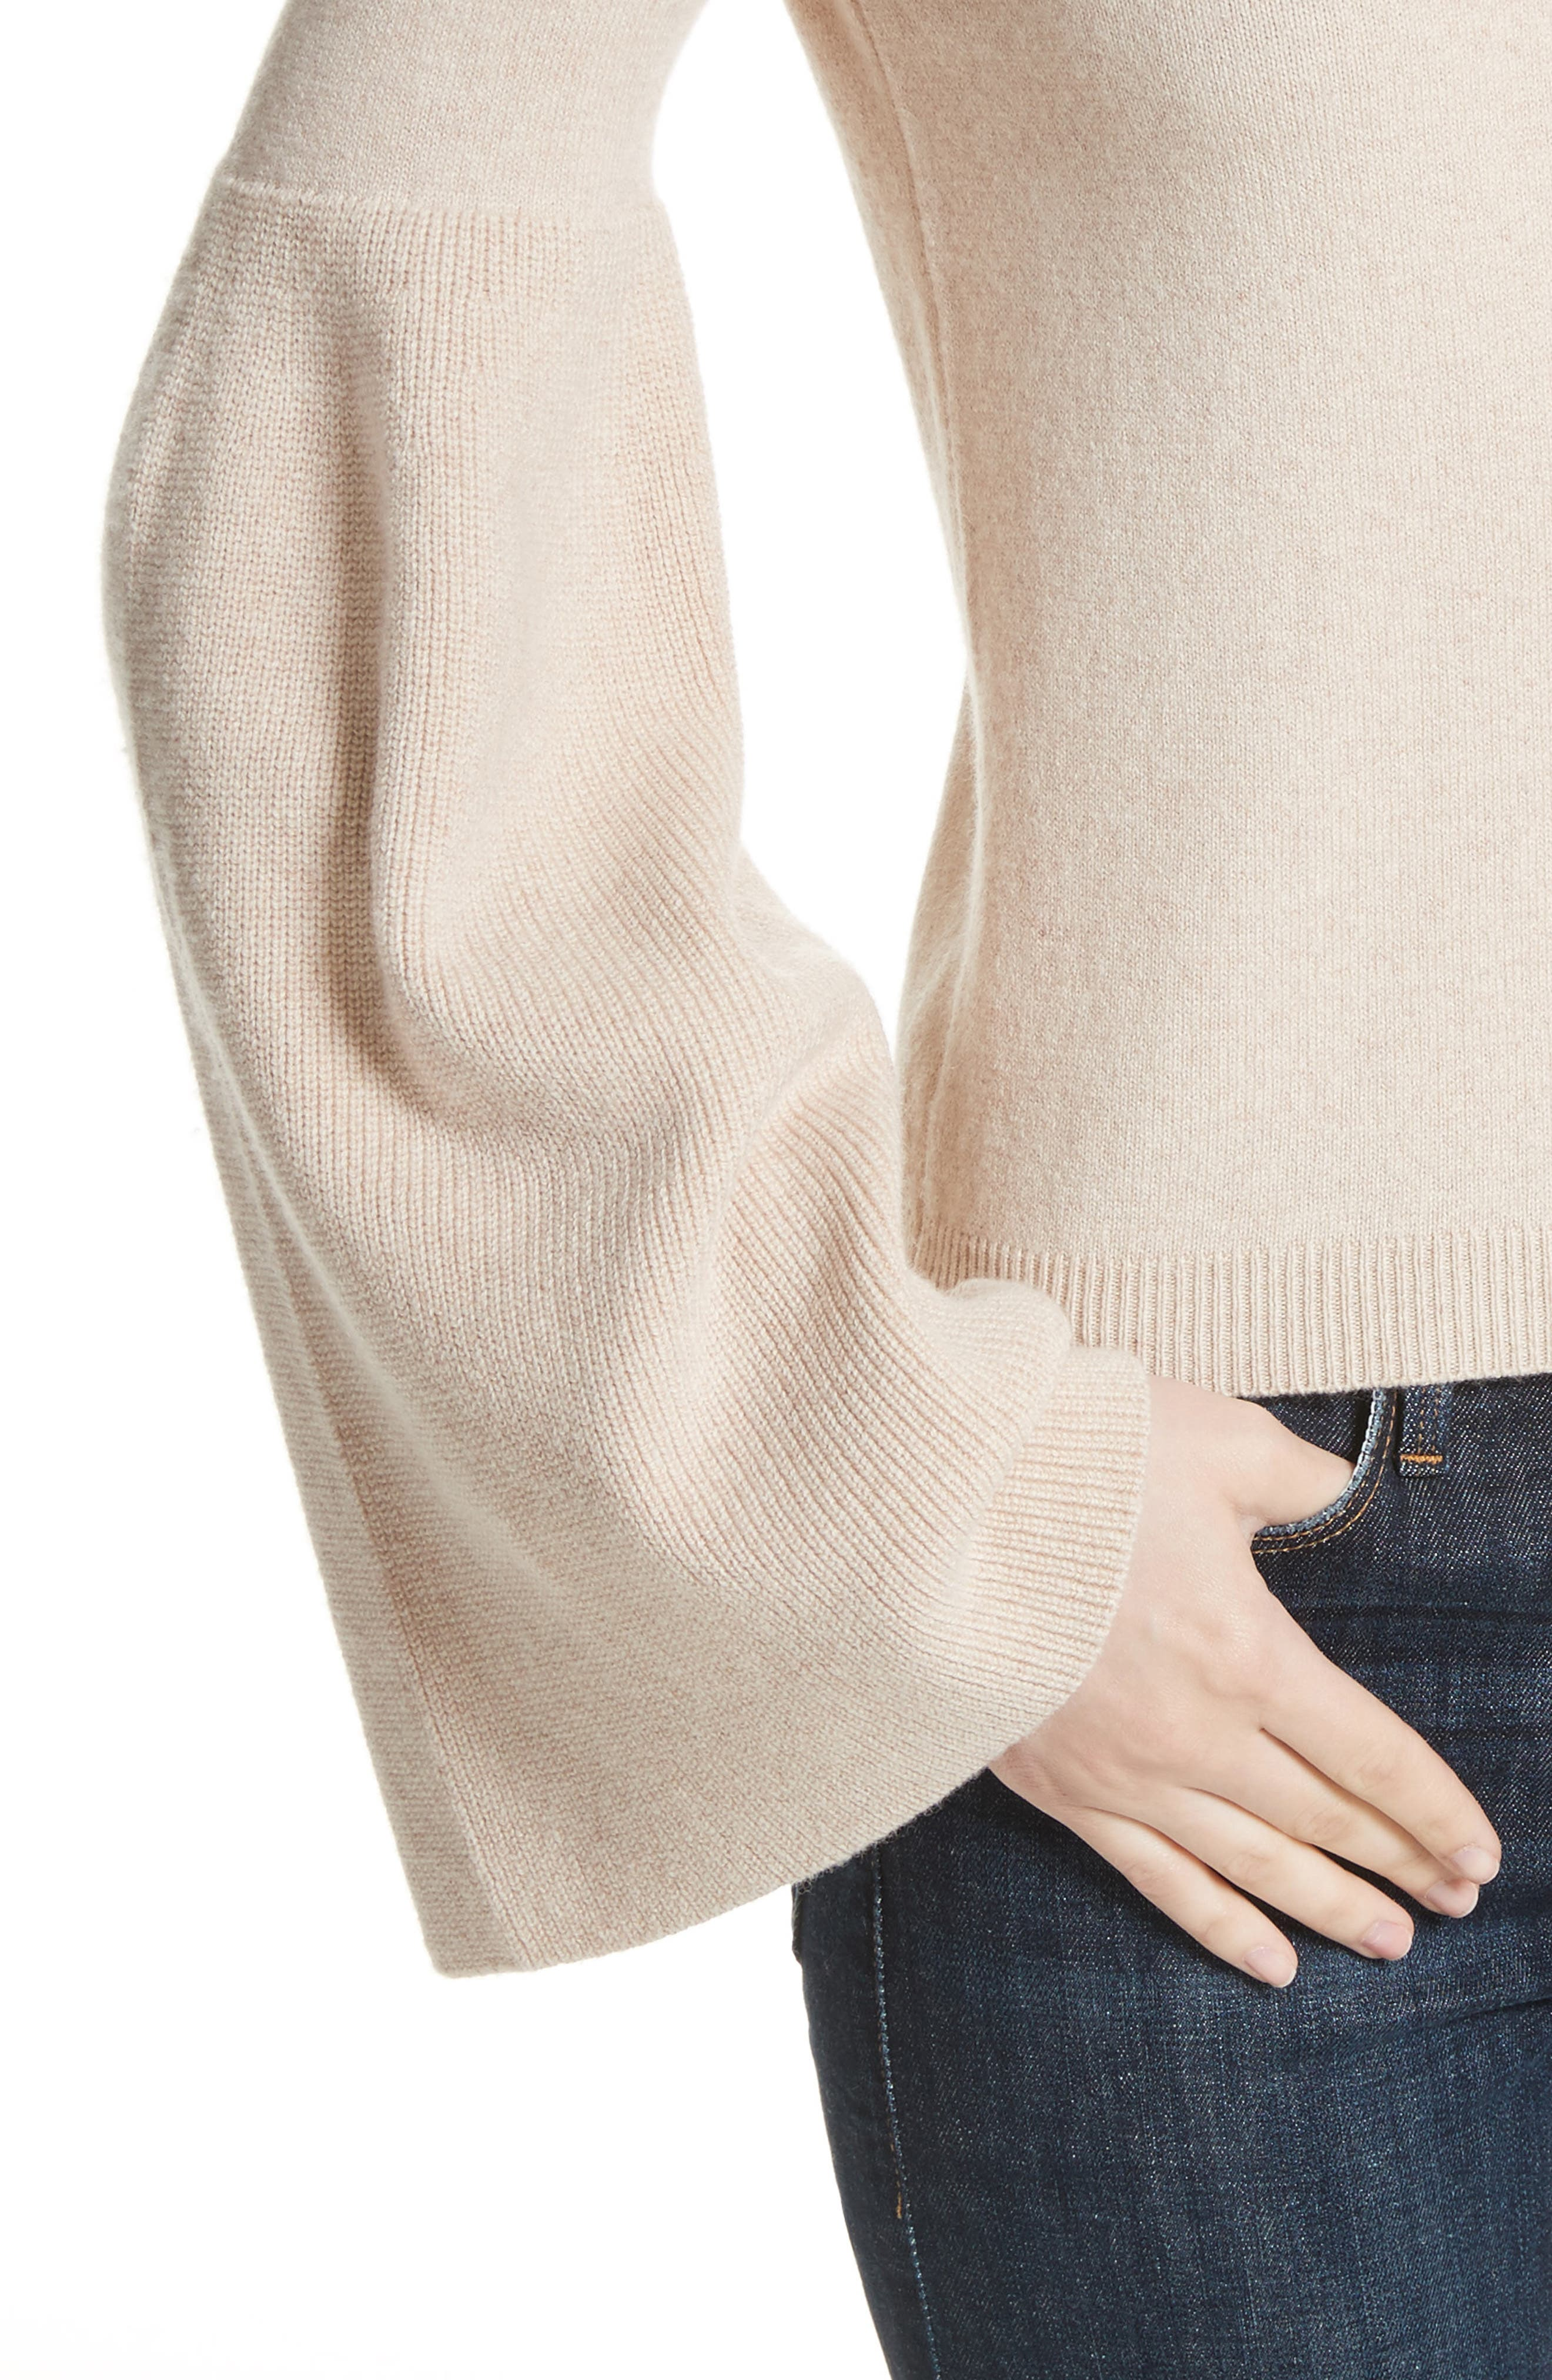 Parson Bell Sleeve Sweater,                             Alternate thumbnail 8, color,